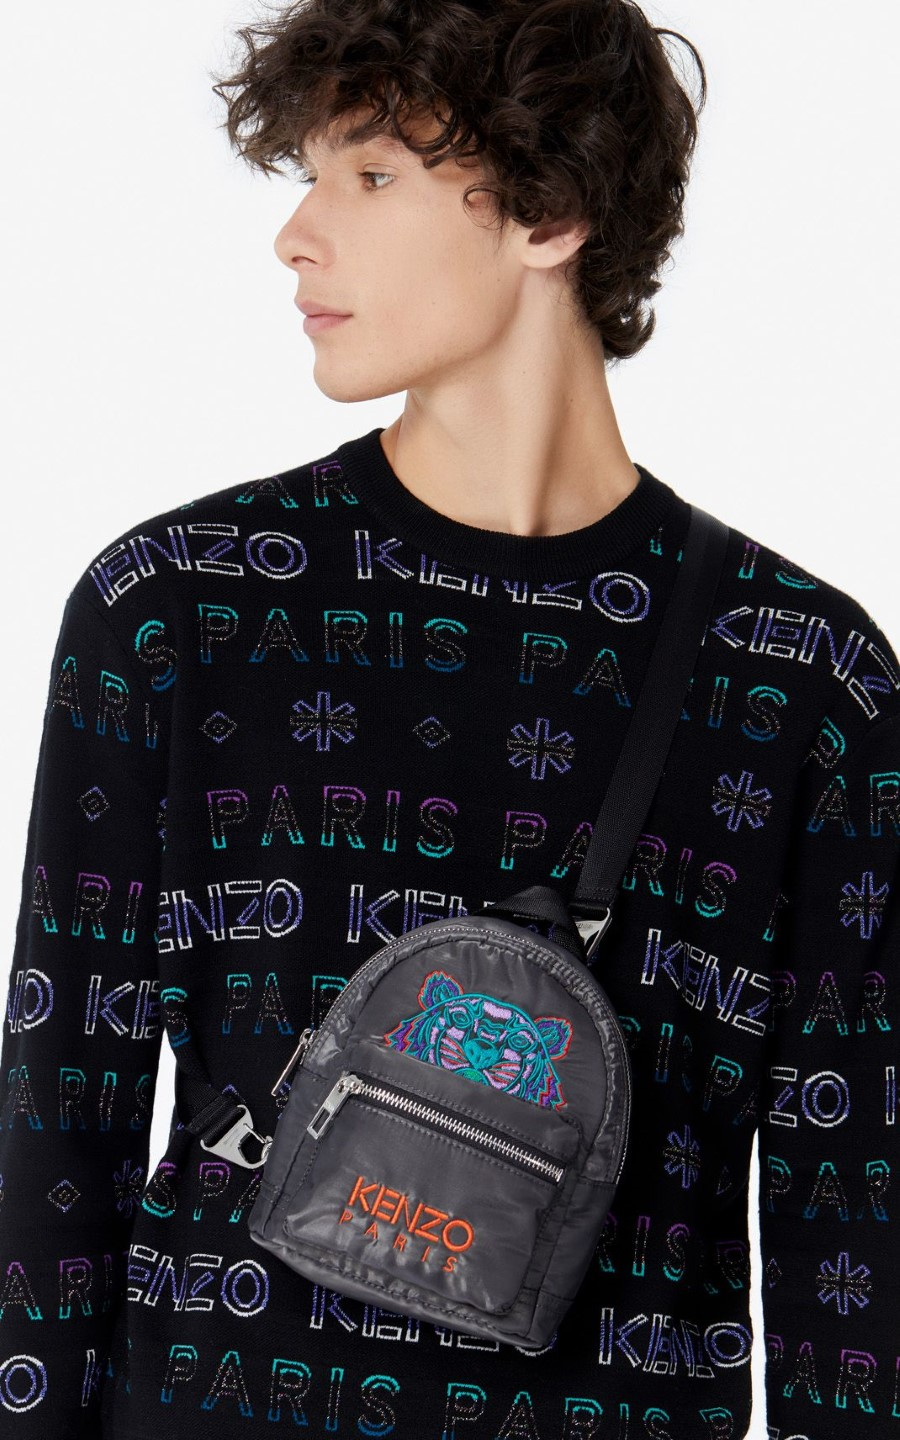 KENZO Collection HOLIDAY CAPSULE 2019